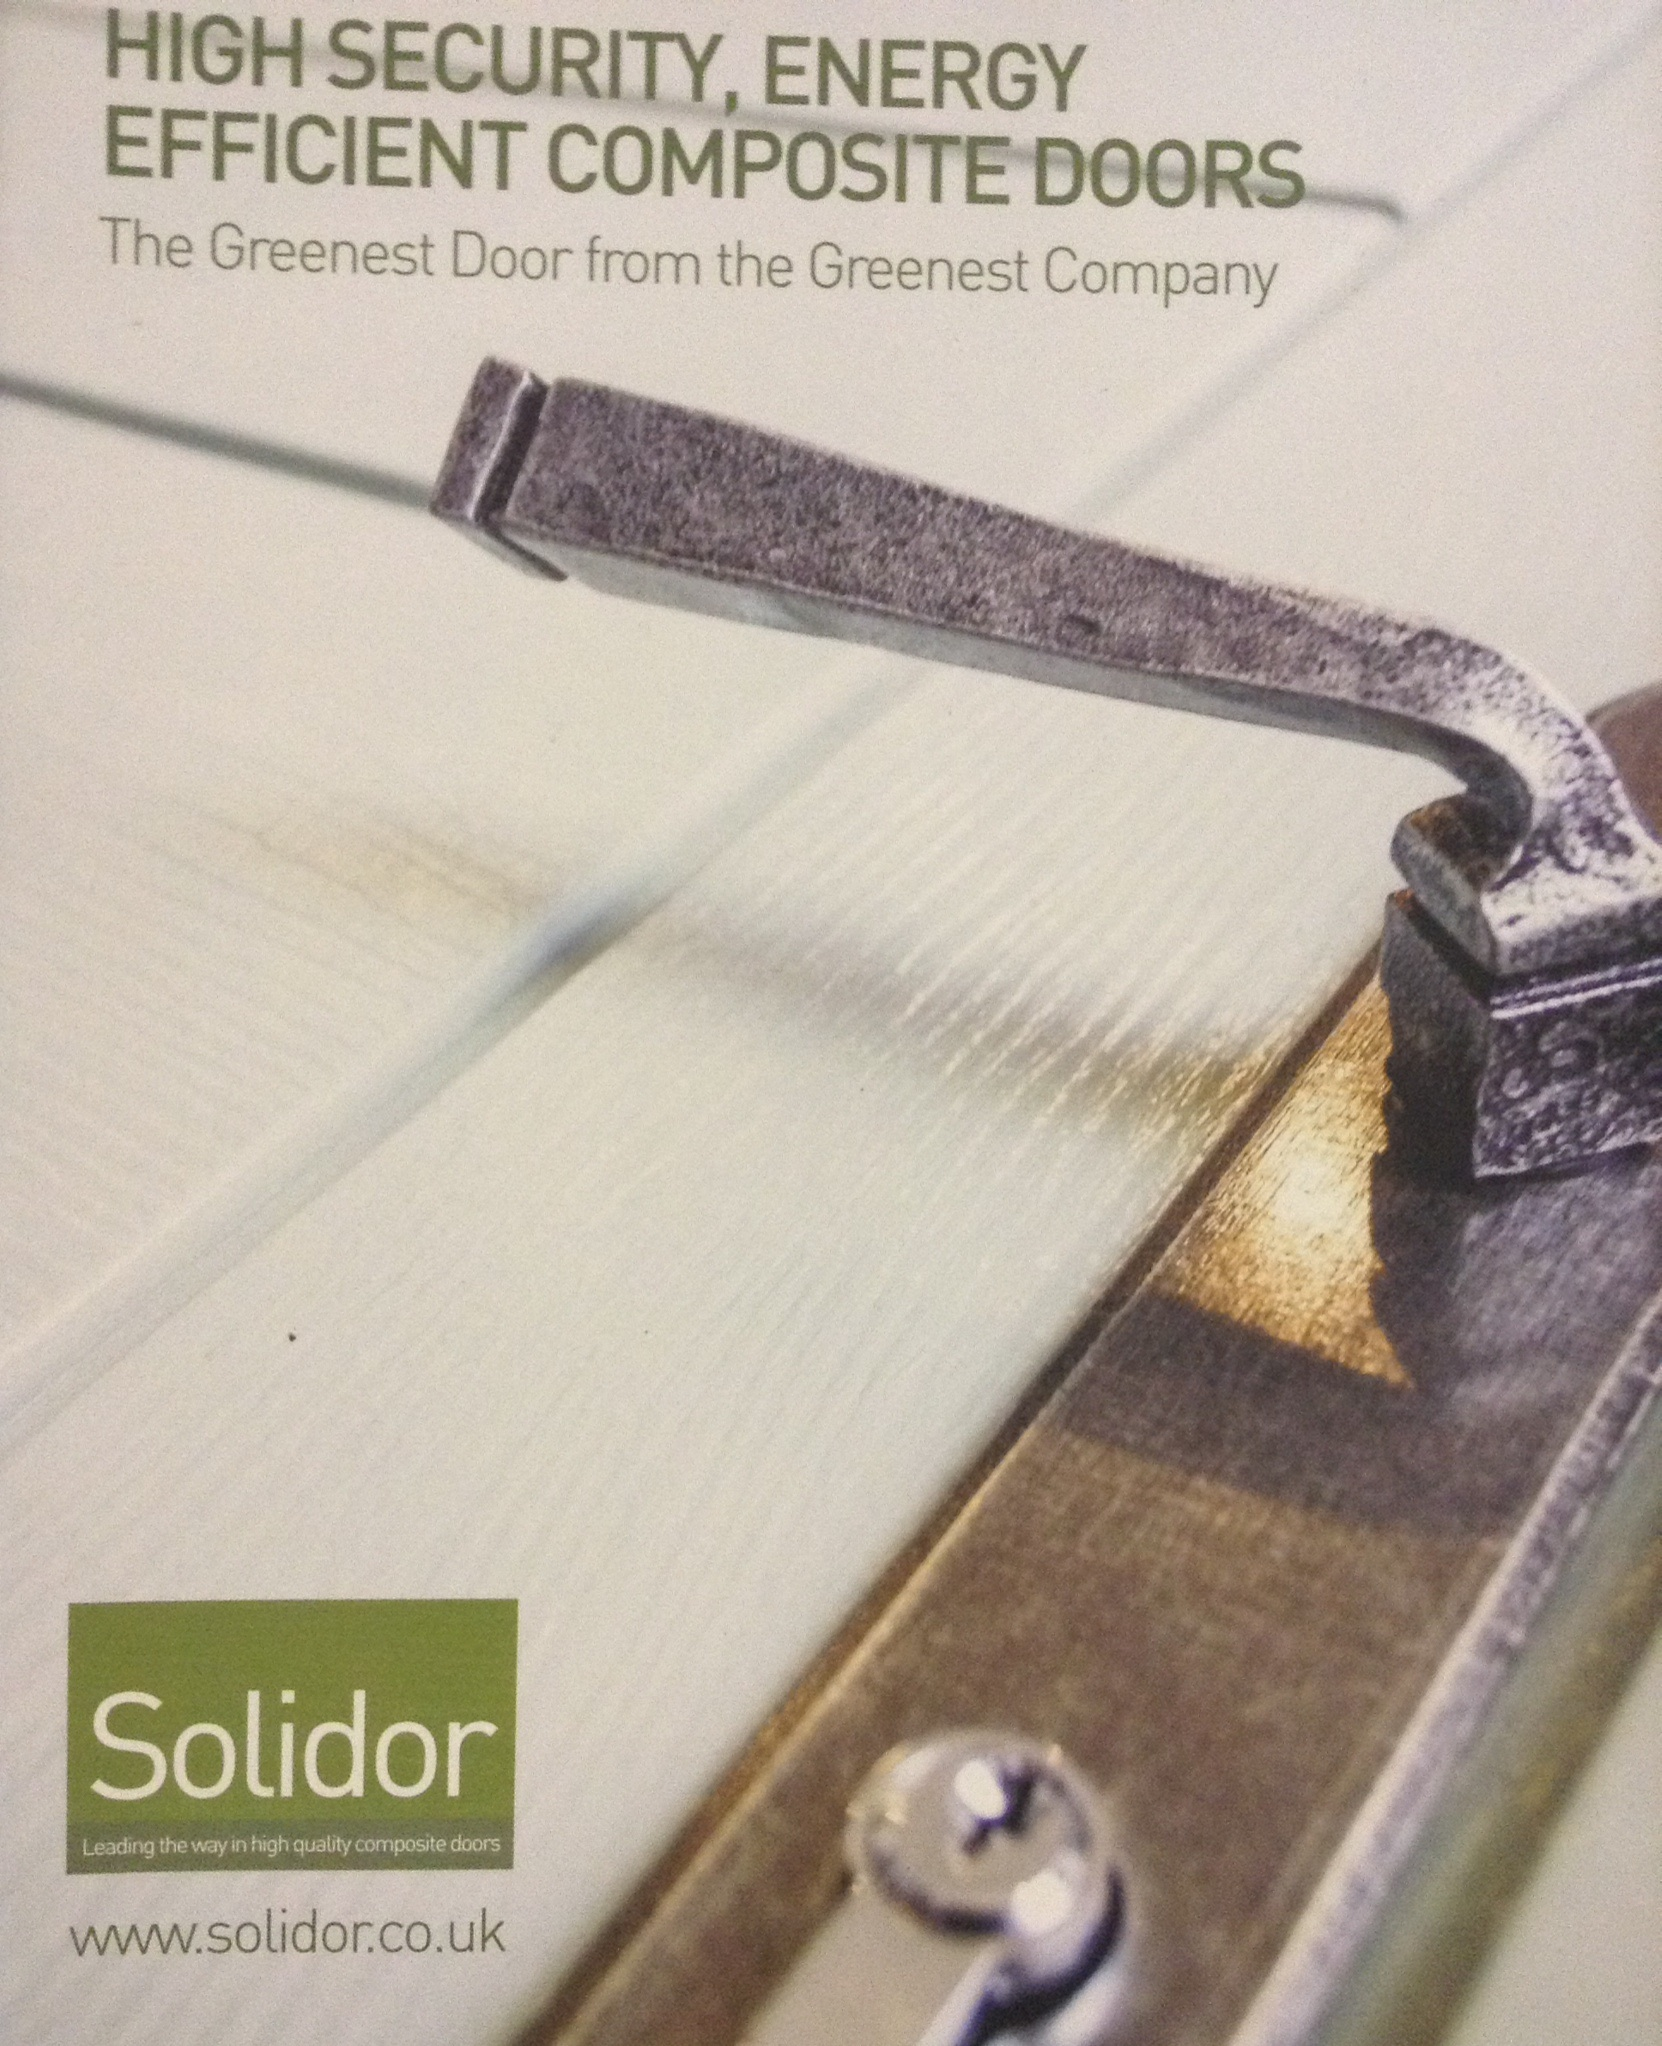 solidor-blog-picture.jpg